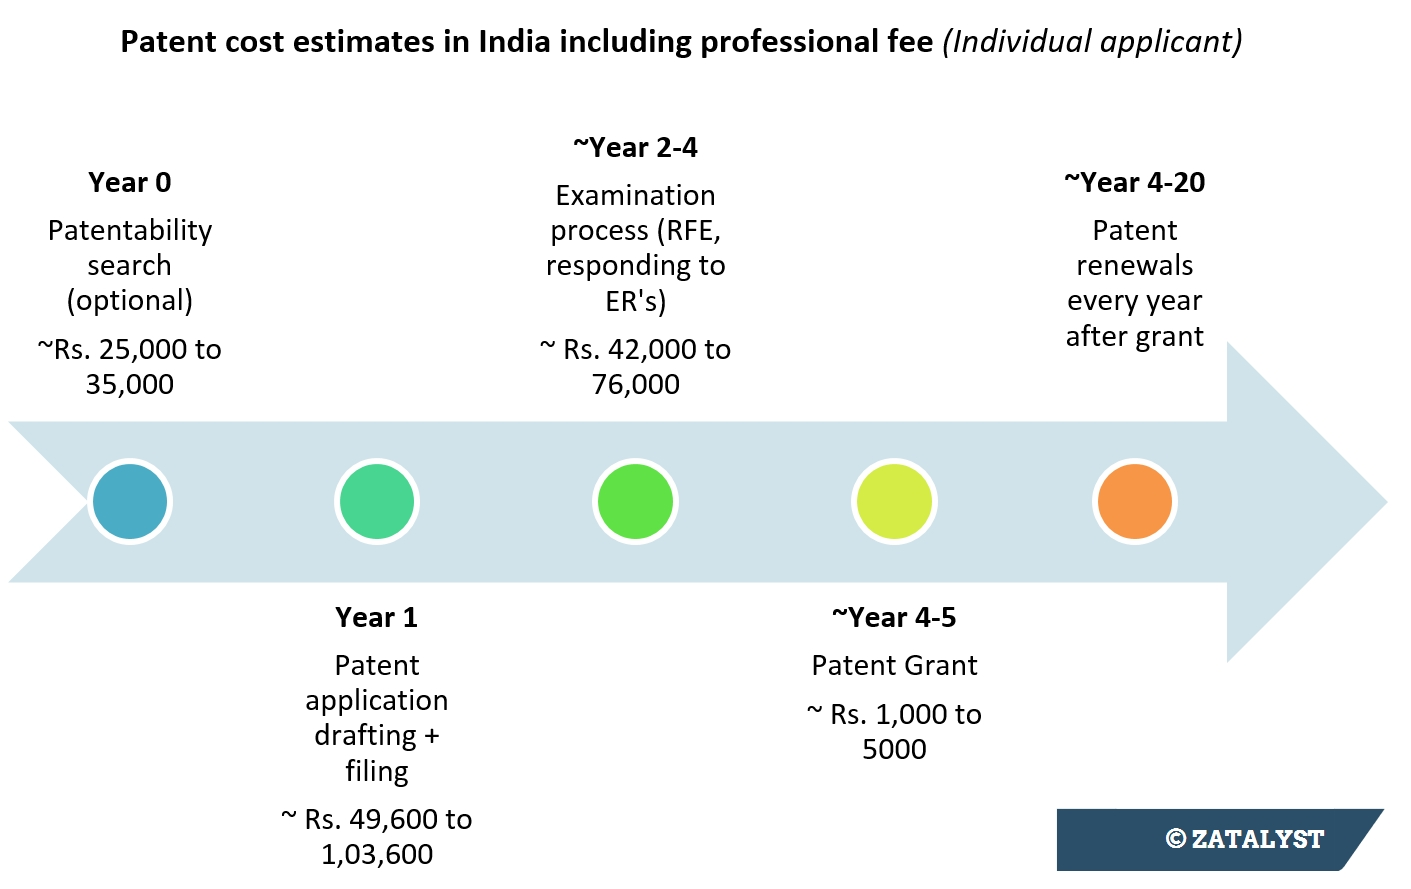 patent process in 7 steps - from filing to grant in india